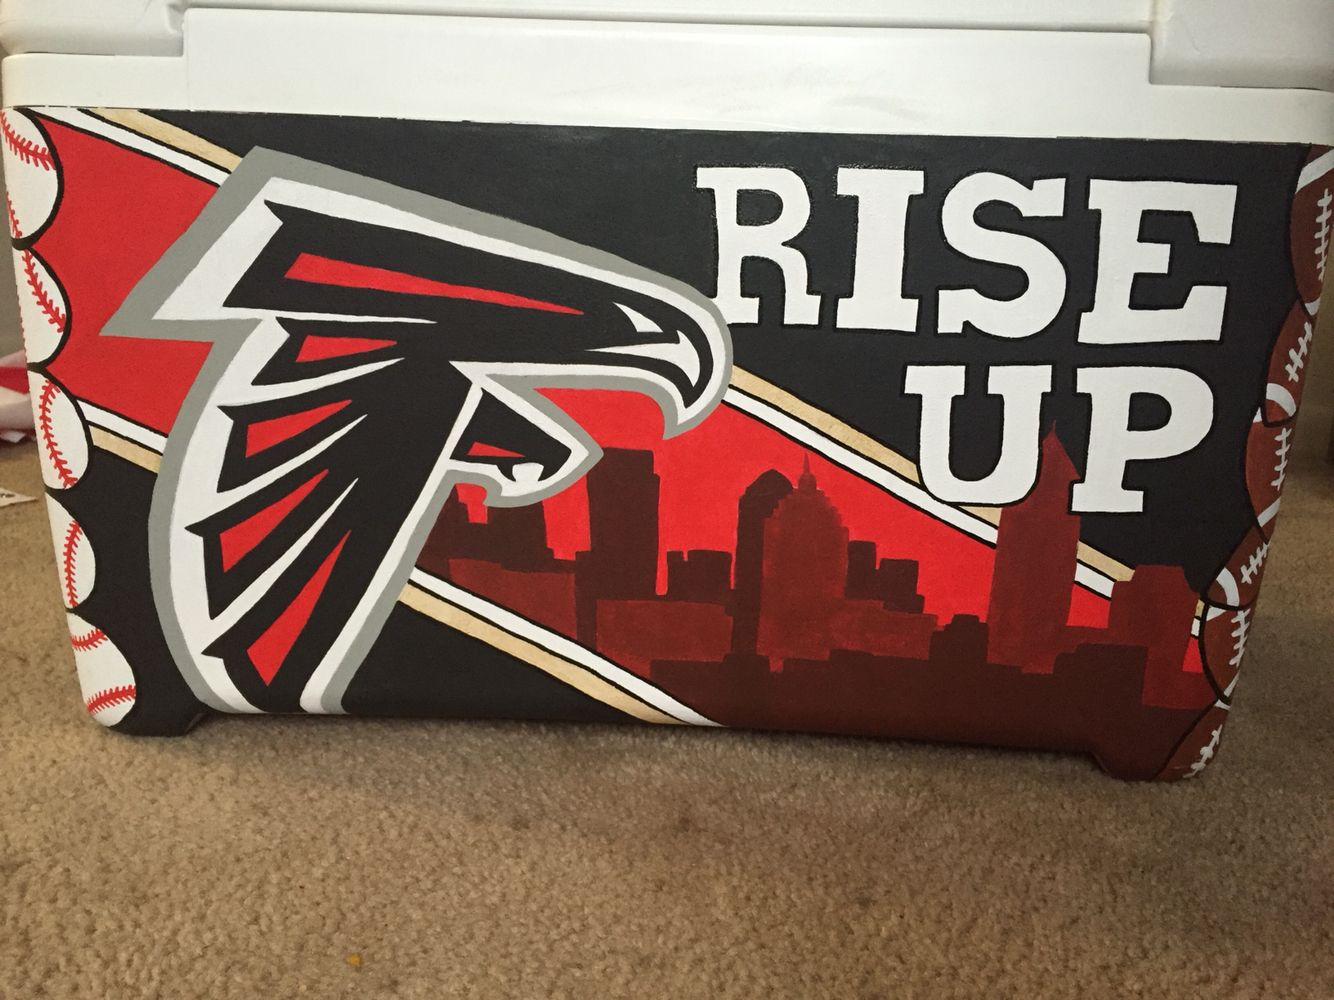 Atlanta Falcons Painted Cooler With Images Atlanta Falcons Painting Cooler Painting Atlanta Falcons Art